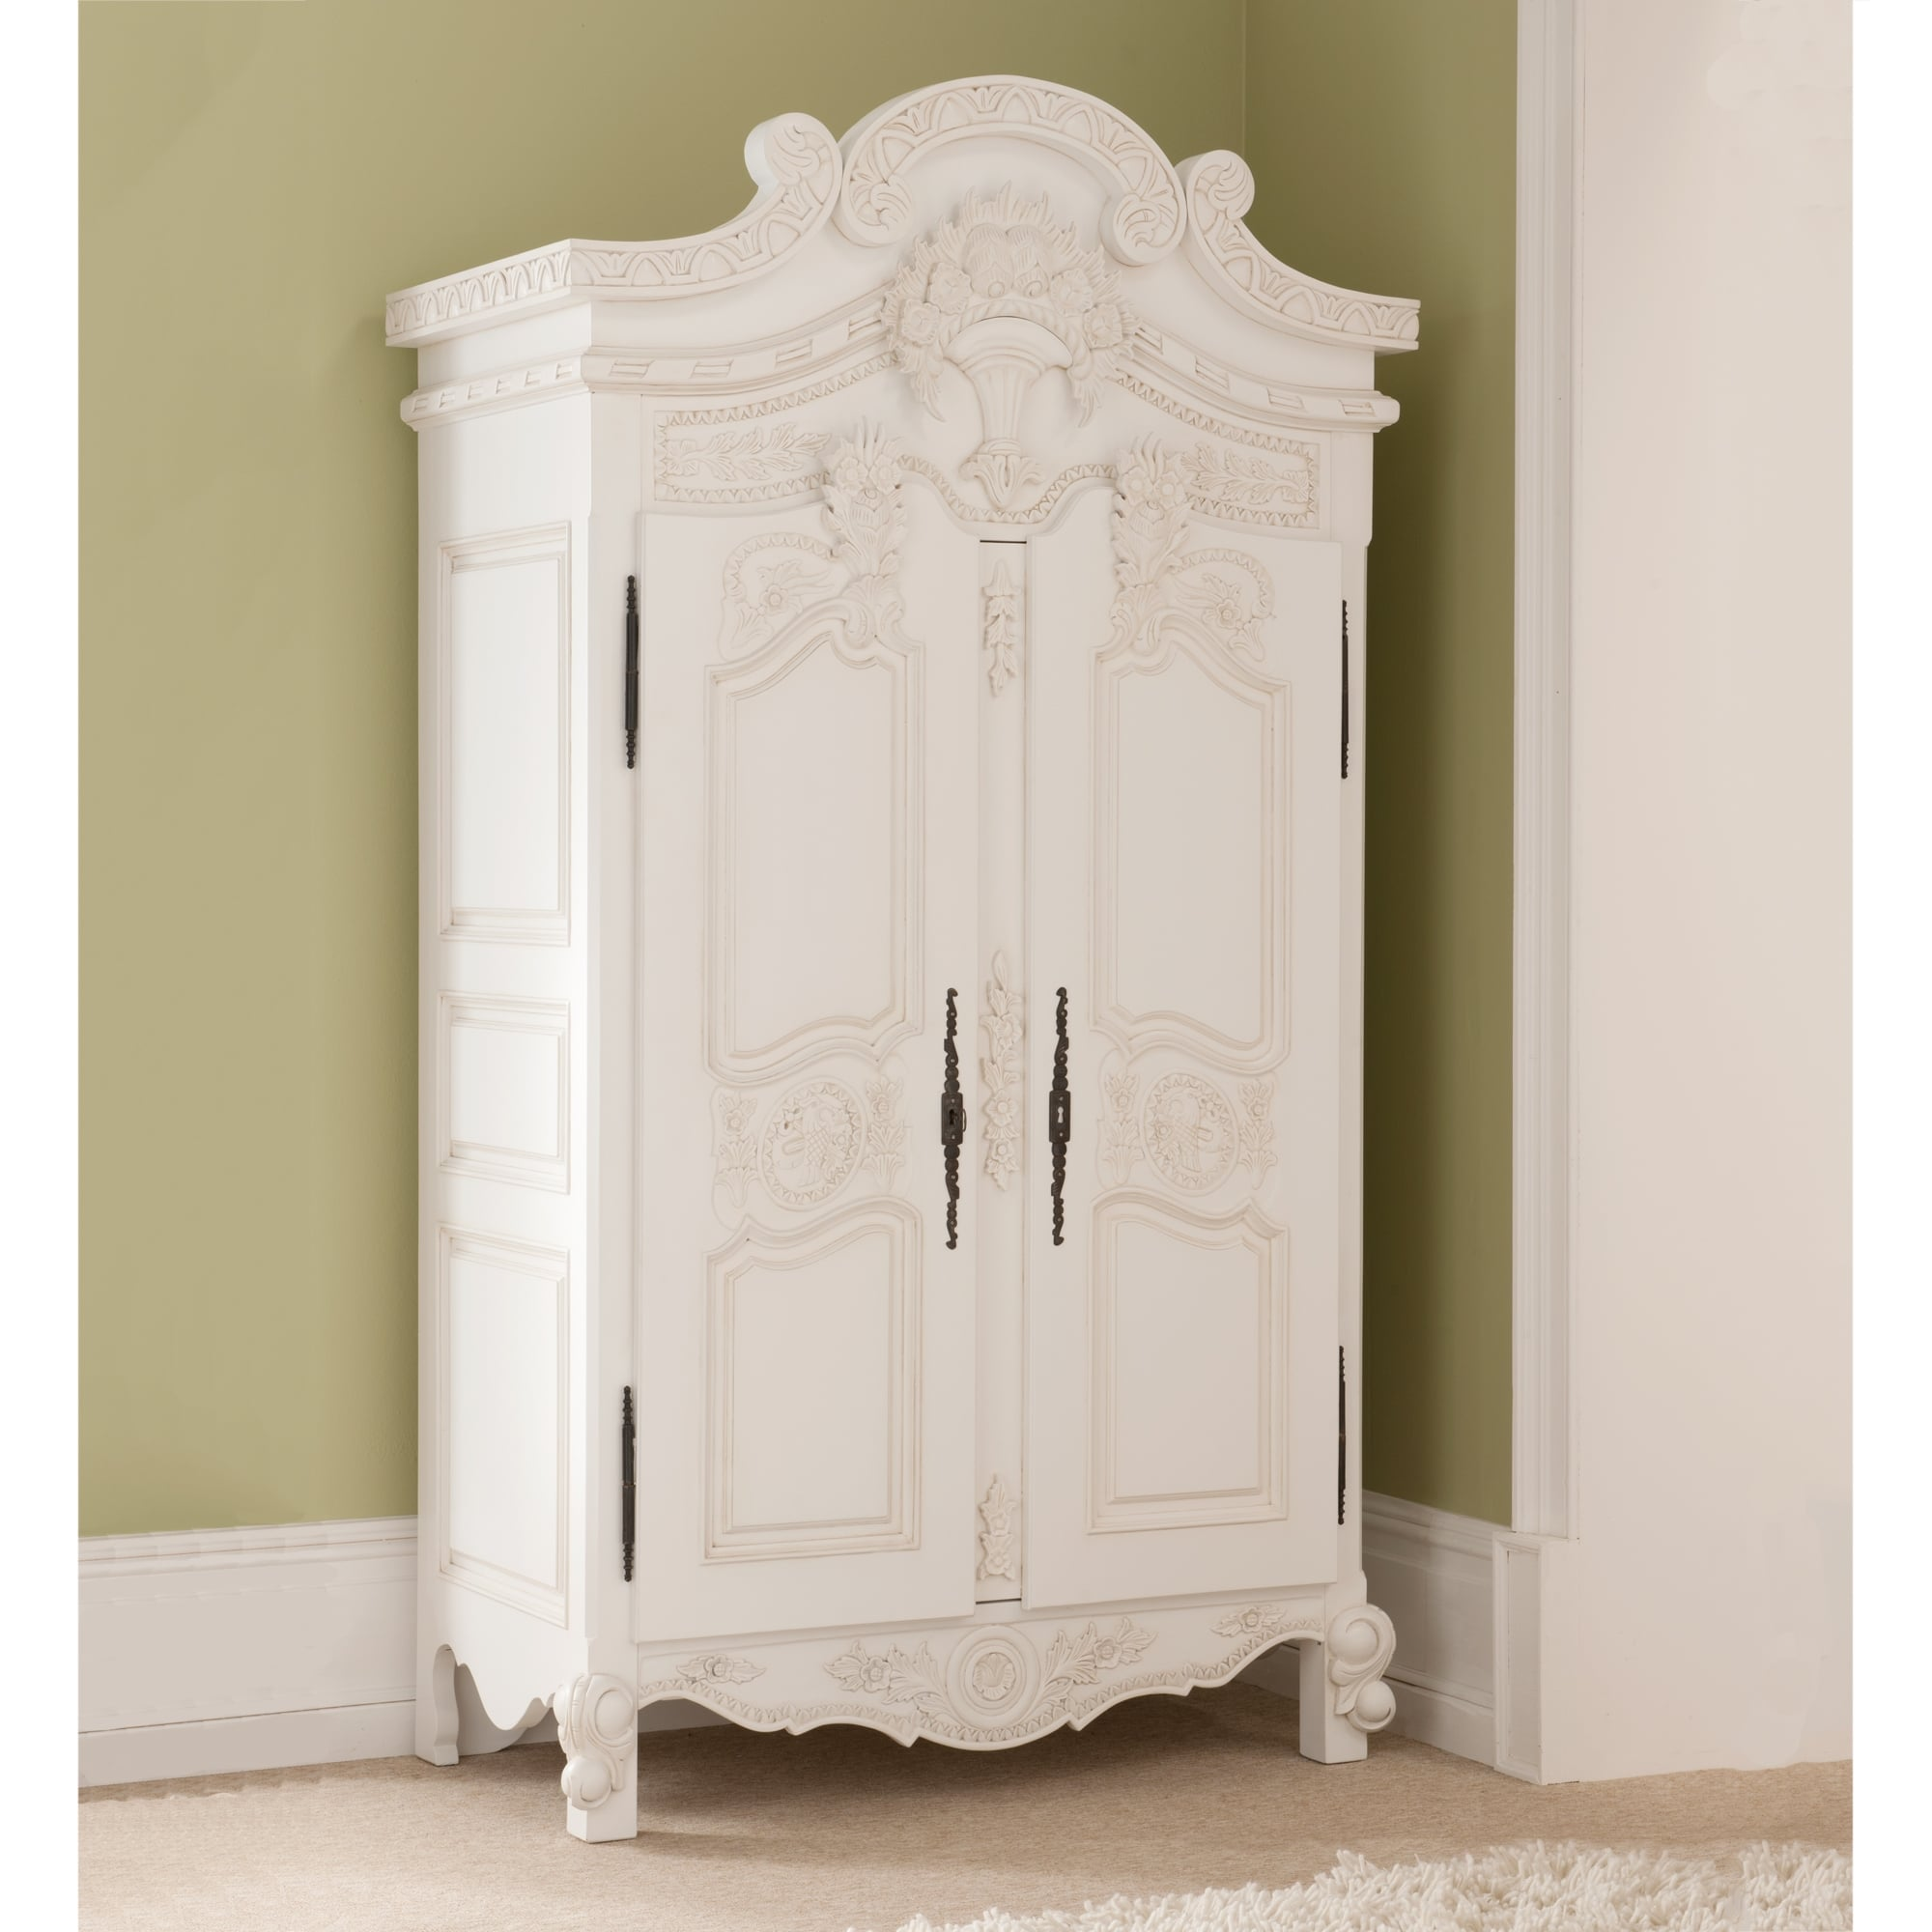 Rococo antique french wardrobe a stunning addition to our for French baroque style